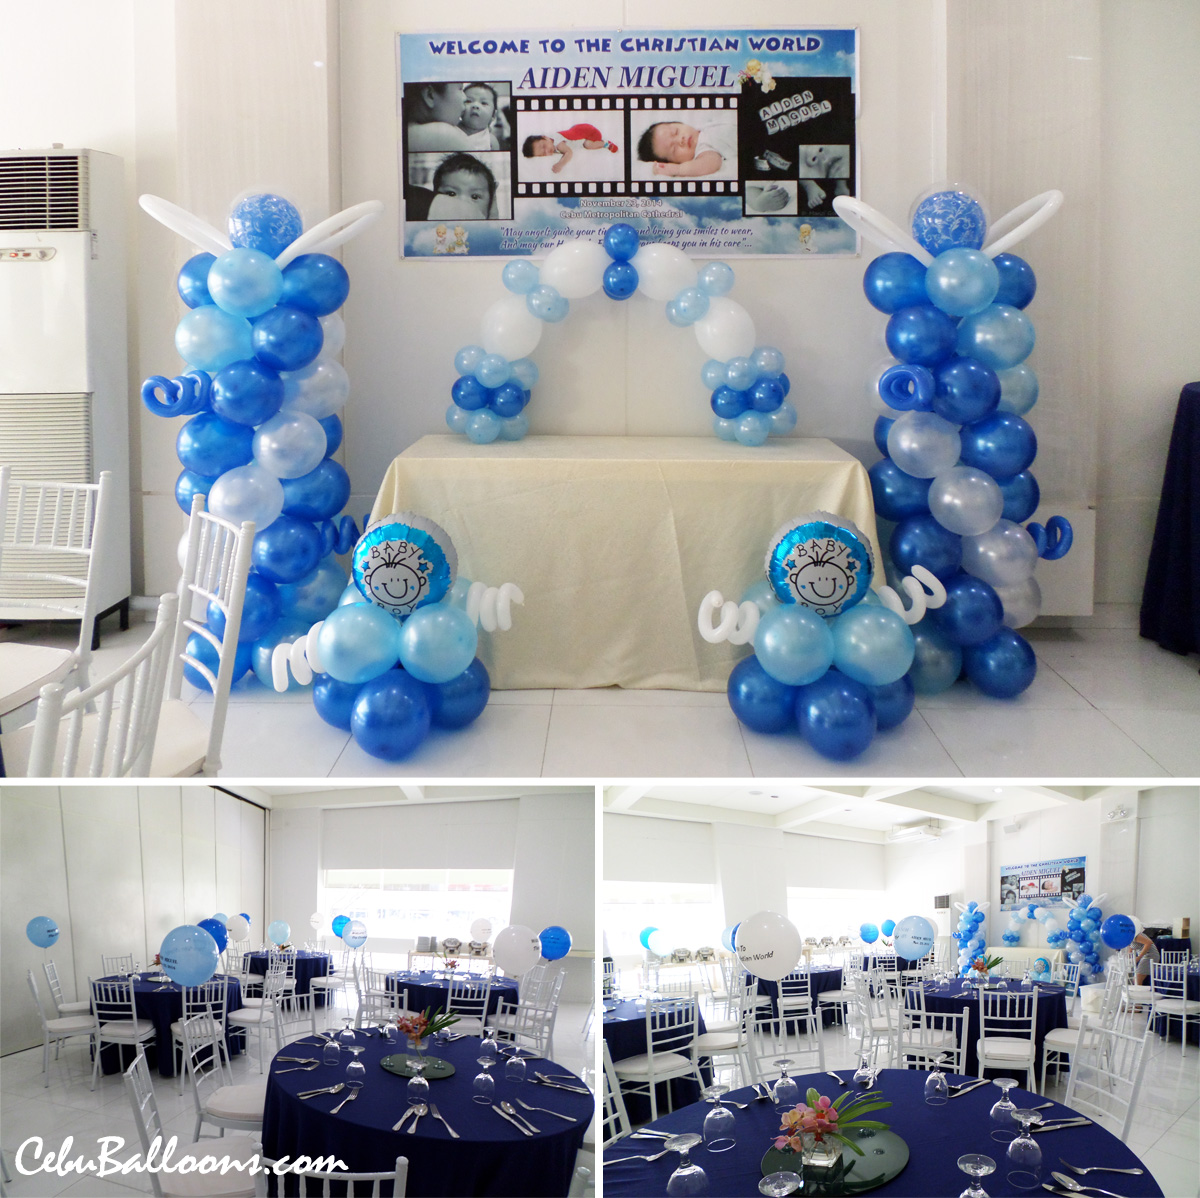 Baptism Decoration For Aiden Miguel At Laguna Garden Cafe